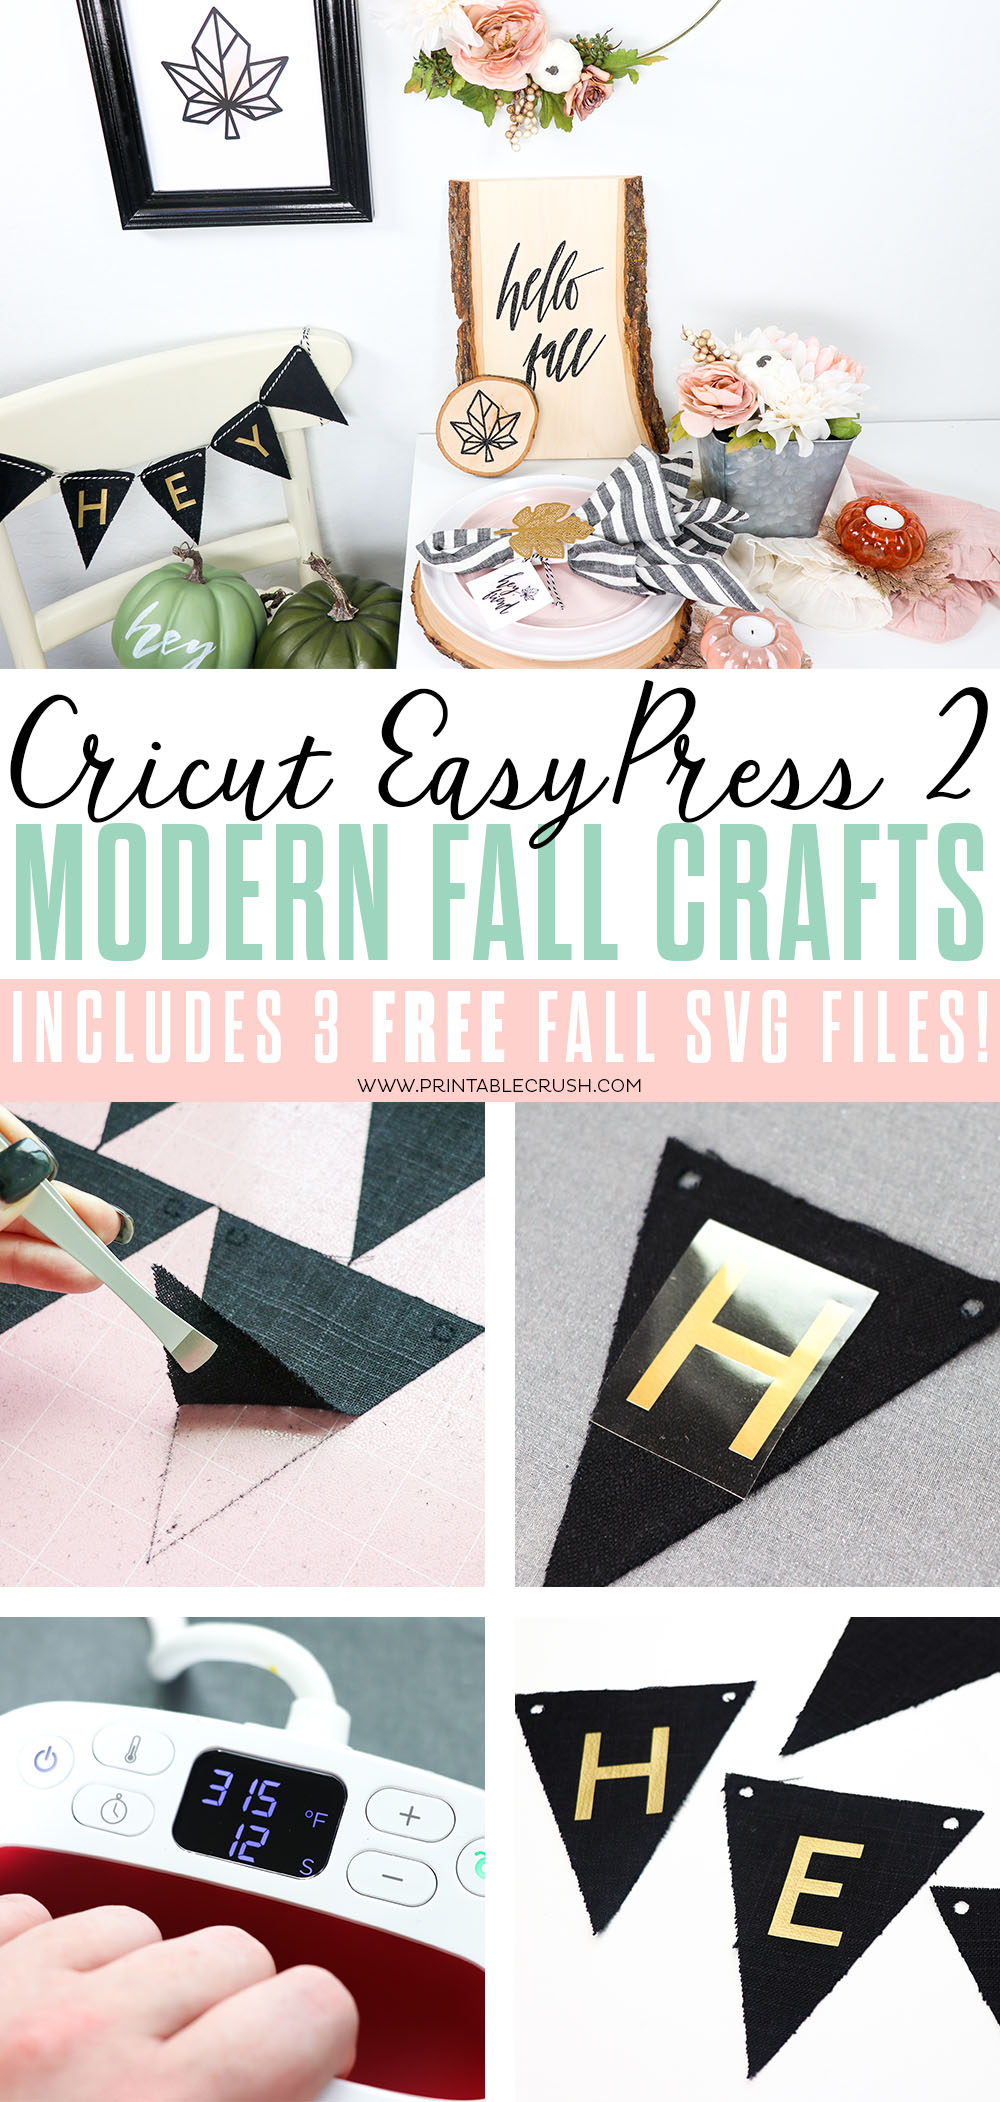 These Cricut EasyPress 2 Modern Fall Crafts and FREE SVG Files are perfect for Thanksgiving or Fall home decor and parties! ! #easypress2 #cricutmade #cricutcraft #cricutmaker #glitterironon #woodplank #walnuthollow #fallhomedecor  via @printablecrush